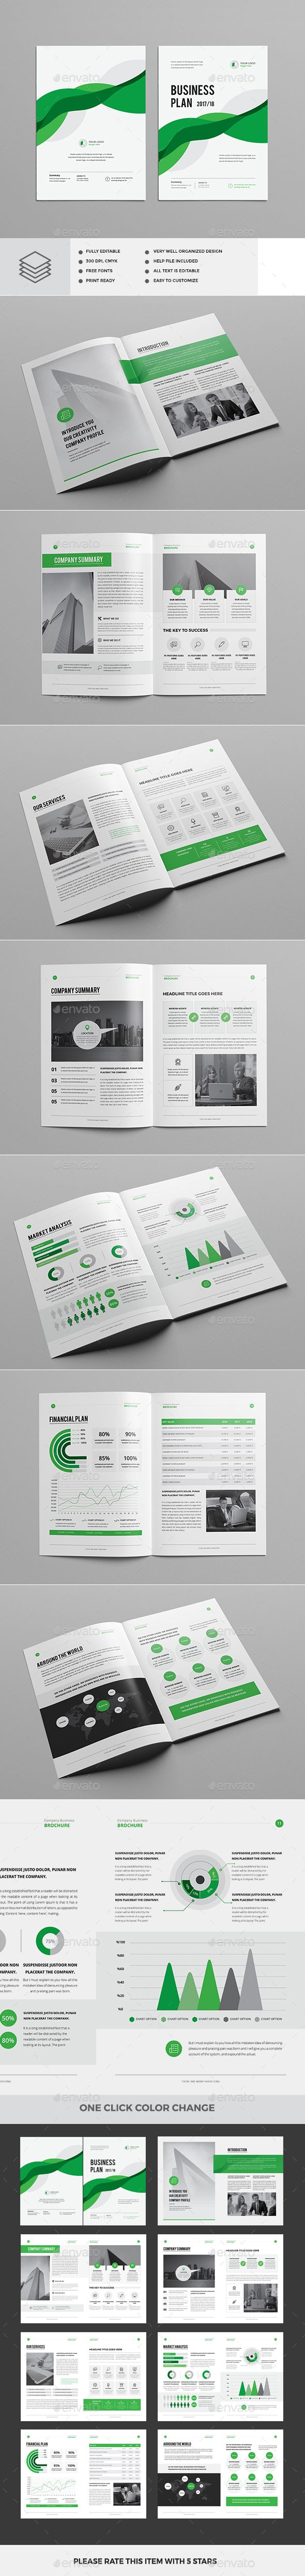 Business plan 2017 business planning brochure template and brochures business plan 2017 by pro gh business plan 2017this indesign brochure is clean cheaphphosting Choice Image